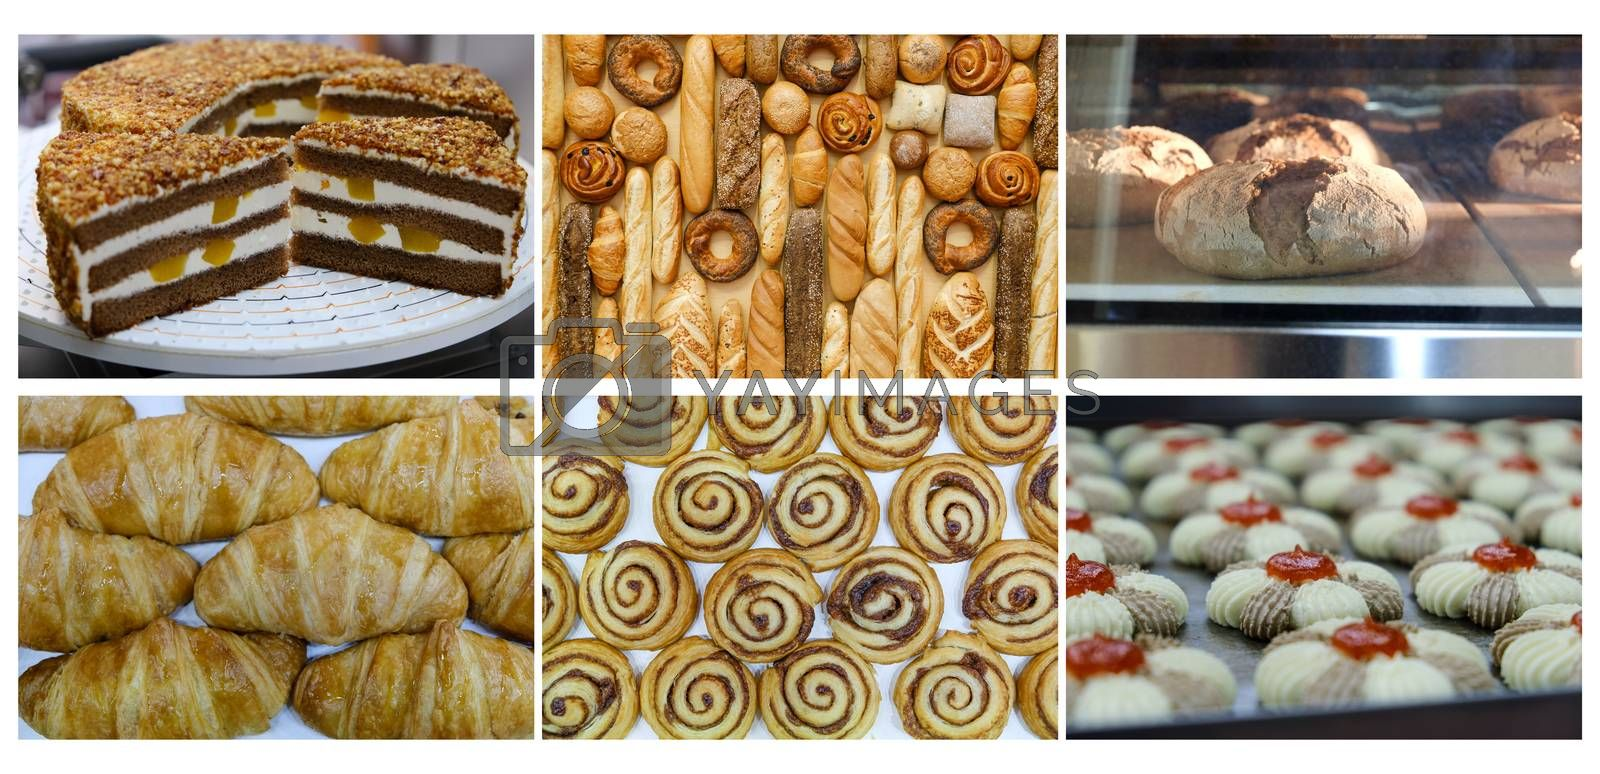 tasty pastry and Bakery foodstuffs collection by Margolana